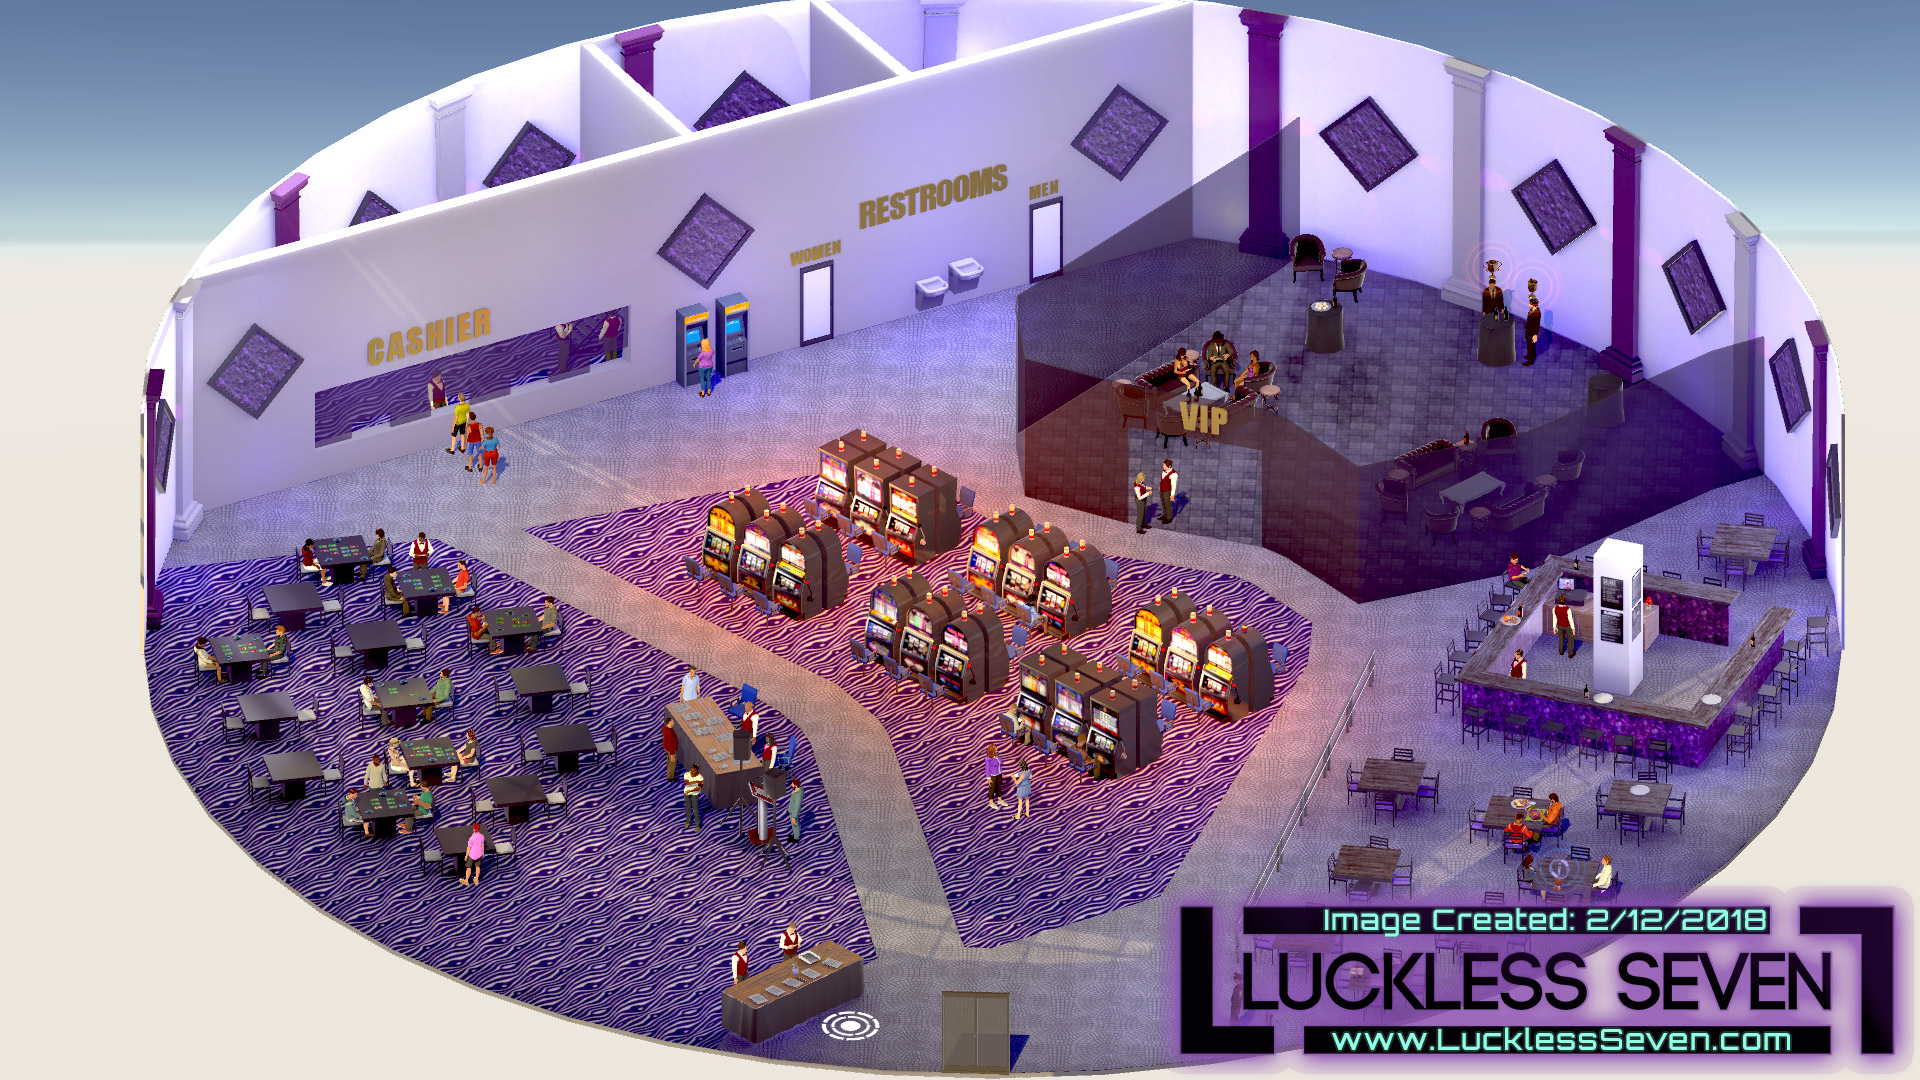 Luckless Seven Amethyst Casino I